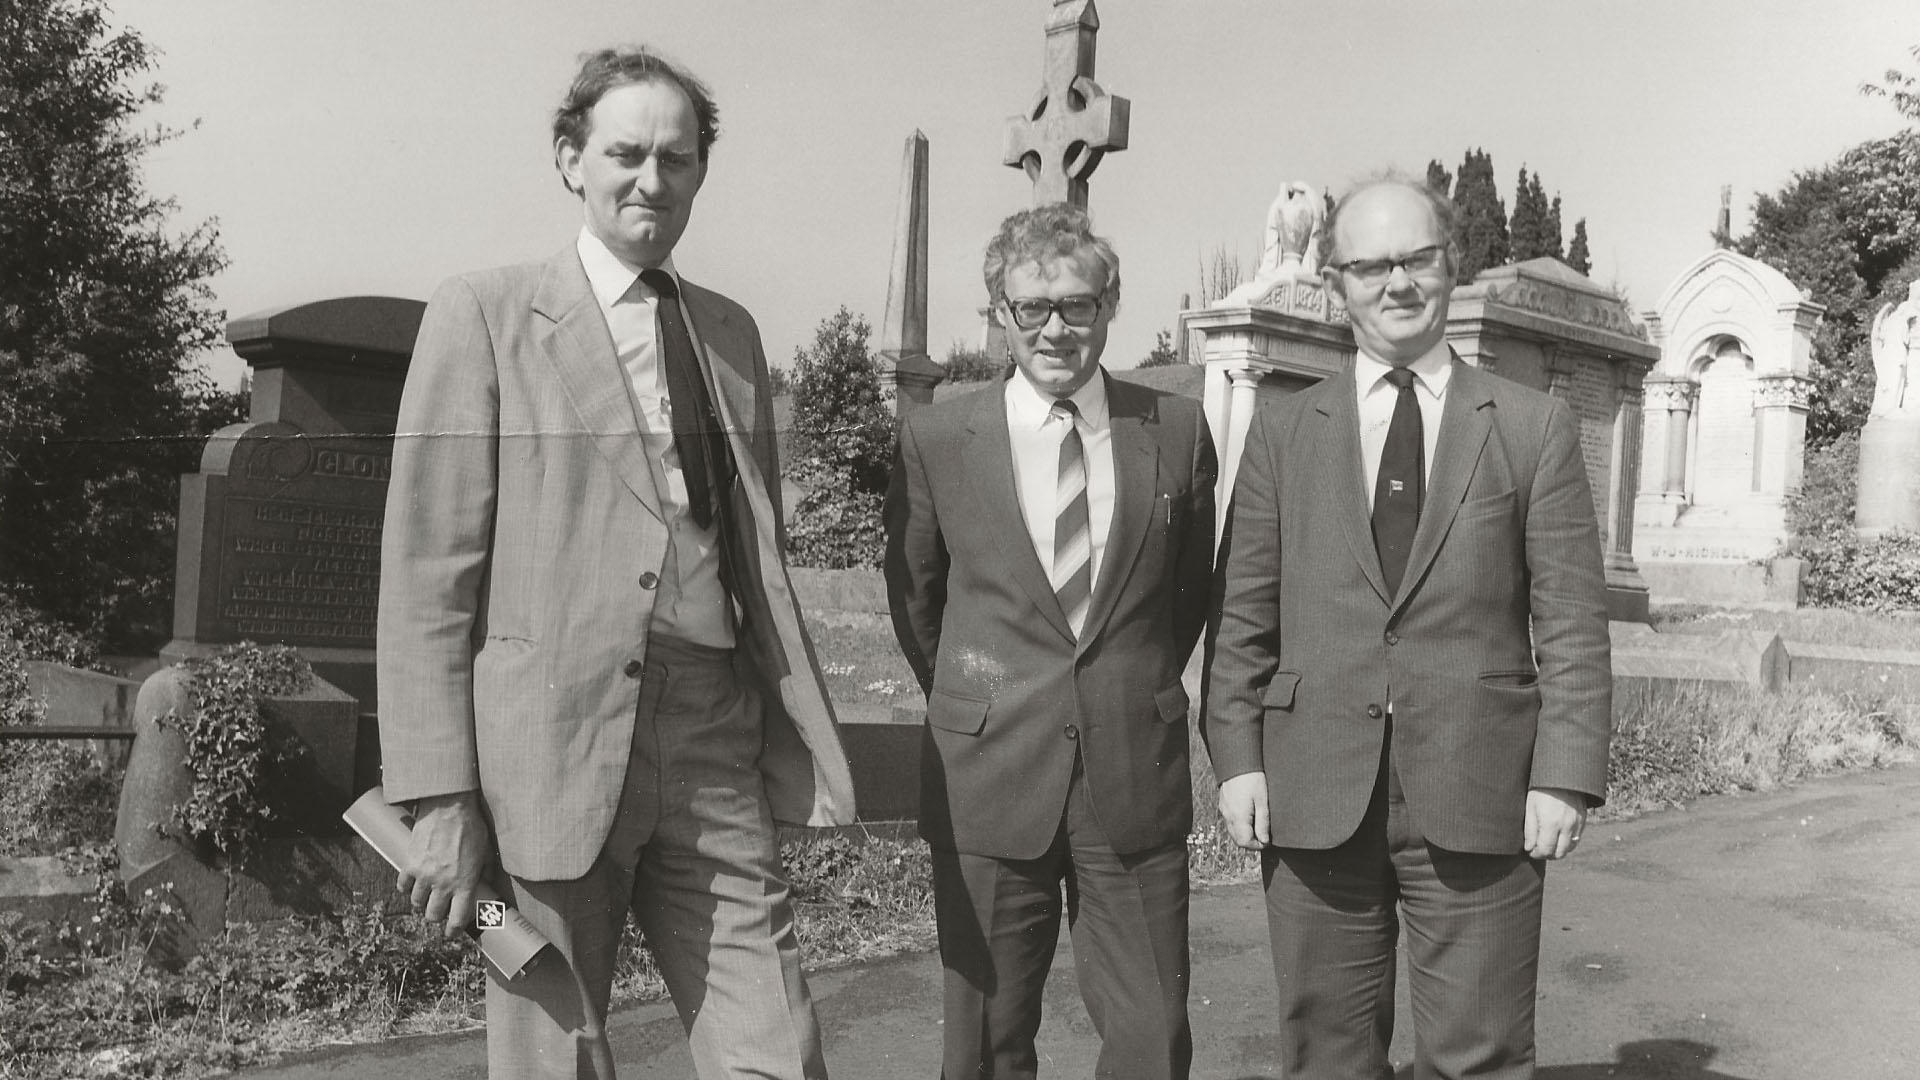 Co-Authors of 'Shipbuilders to the World' at Belfast City Cemetery viewing Lord Pirrie's Memorial, about 1985.